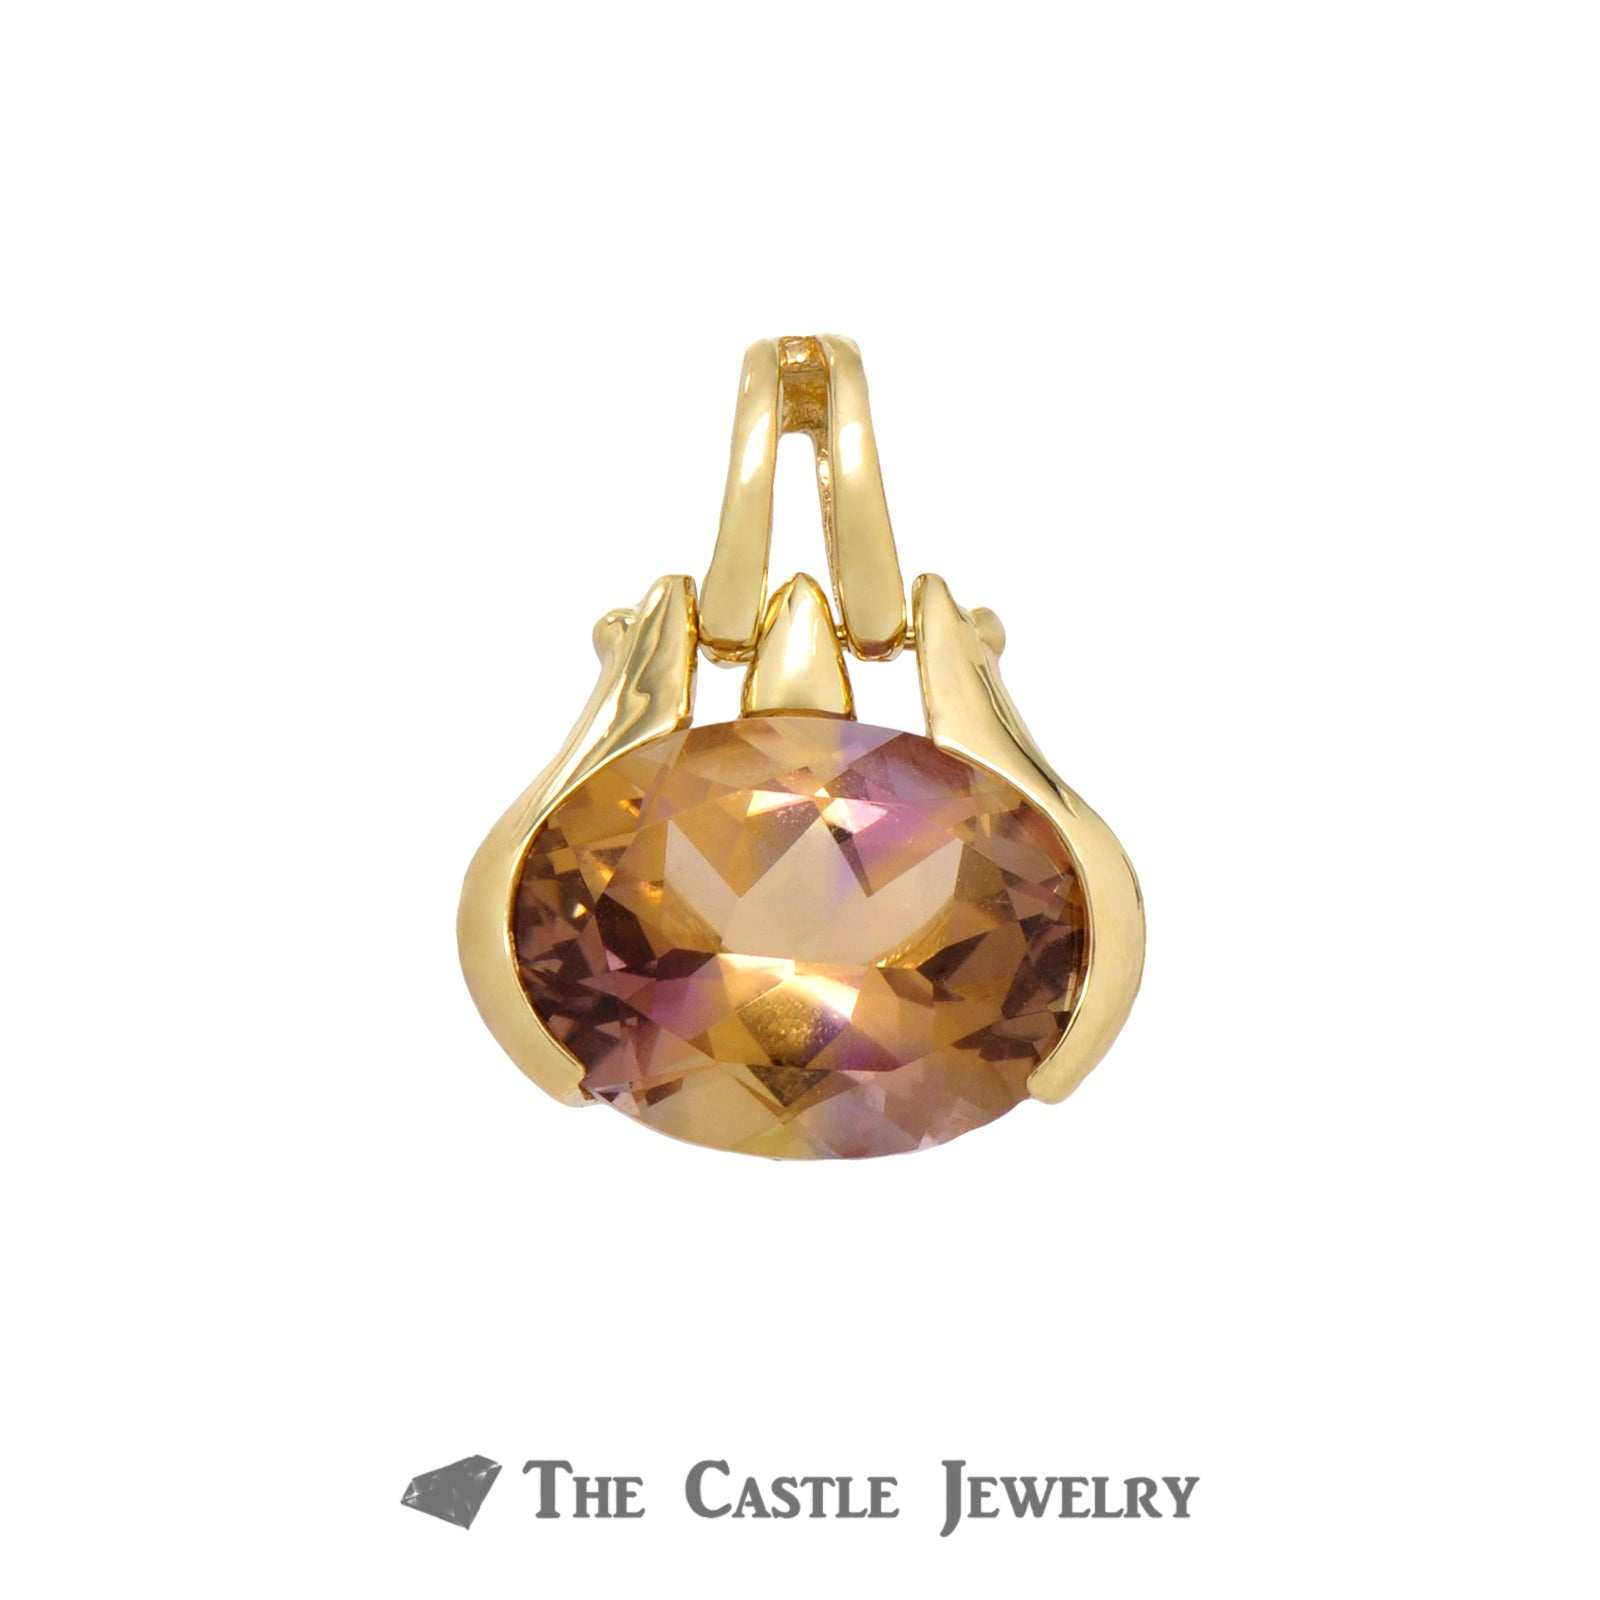 Oval Cut Citrine Pendant in 14k Yellow Gold